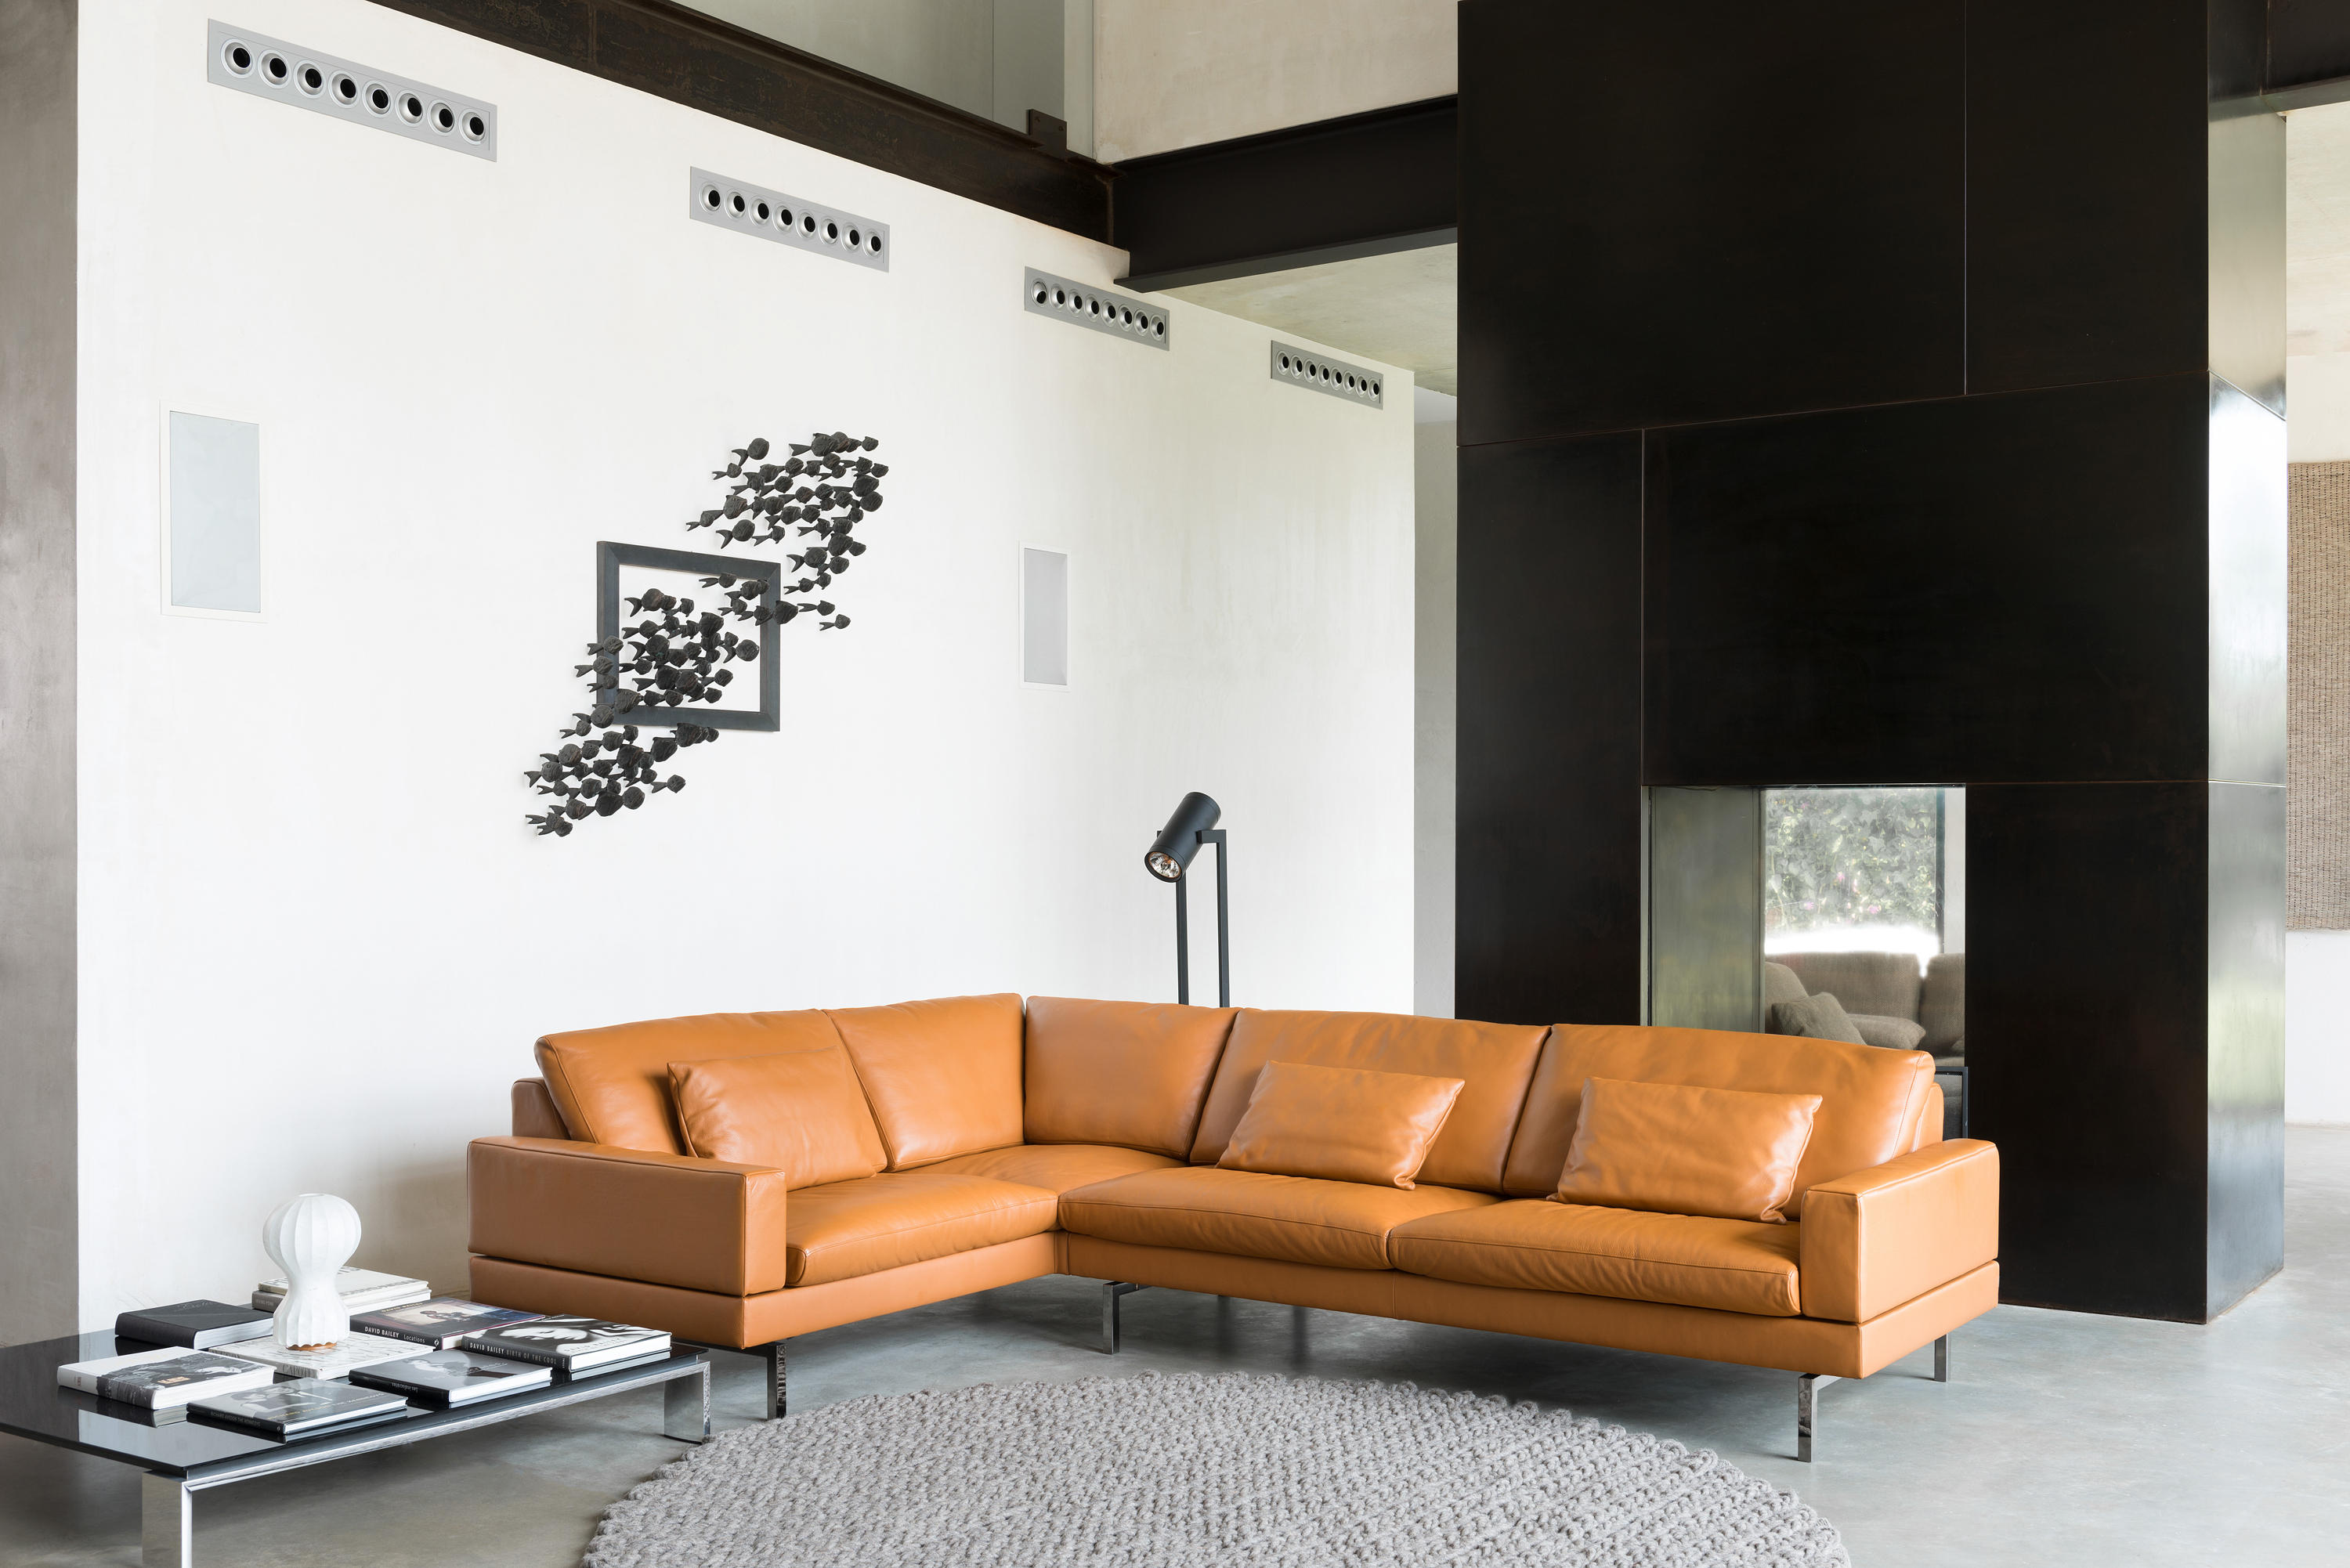 tigra ecksofa loungesofas von jori architonic. Black Bedroom Furniture Sets. Home Design Ideas